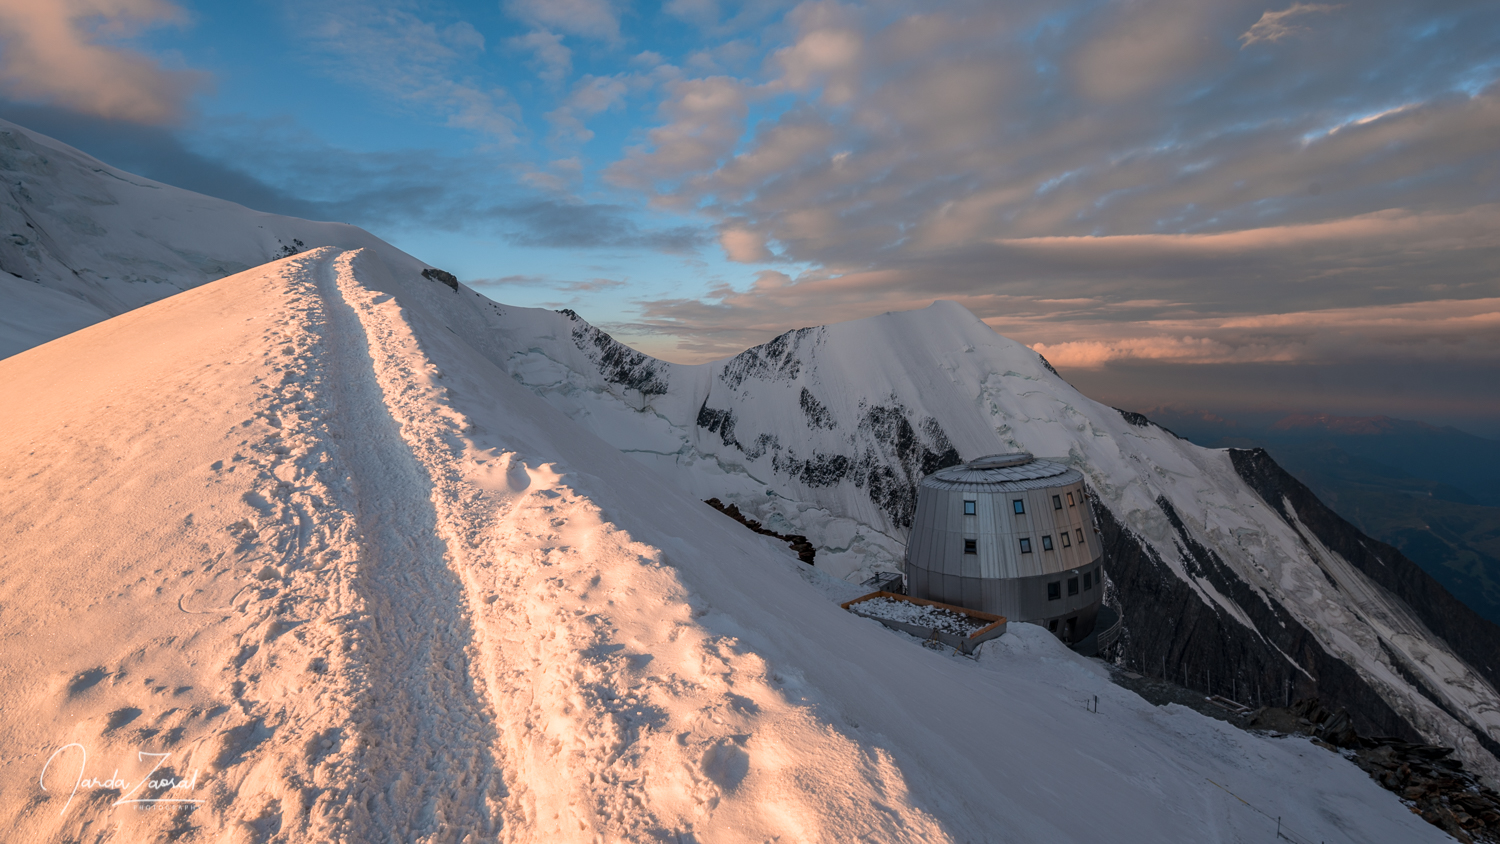 Sunrise at the Gouter Hut